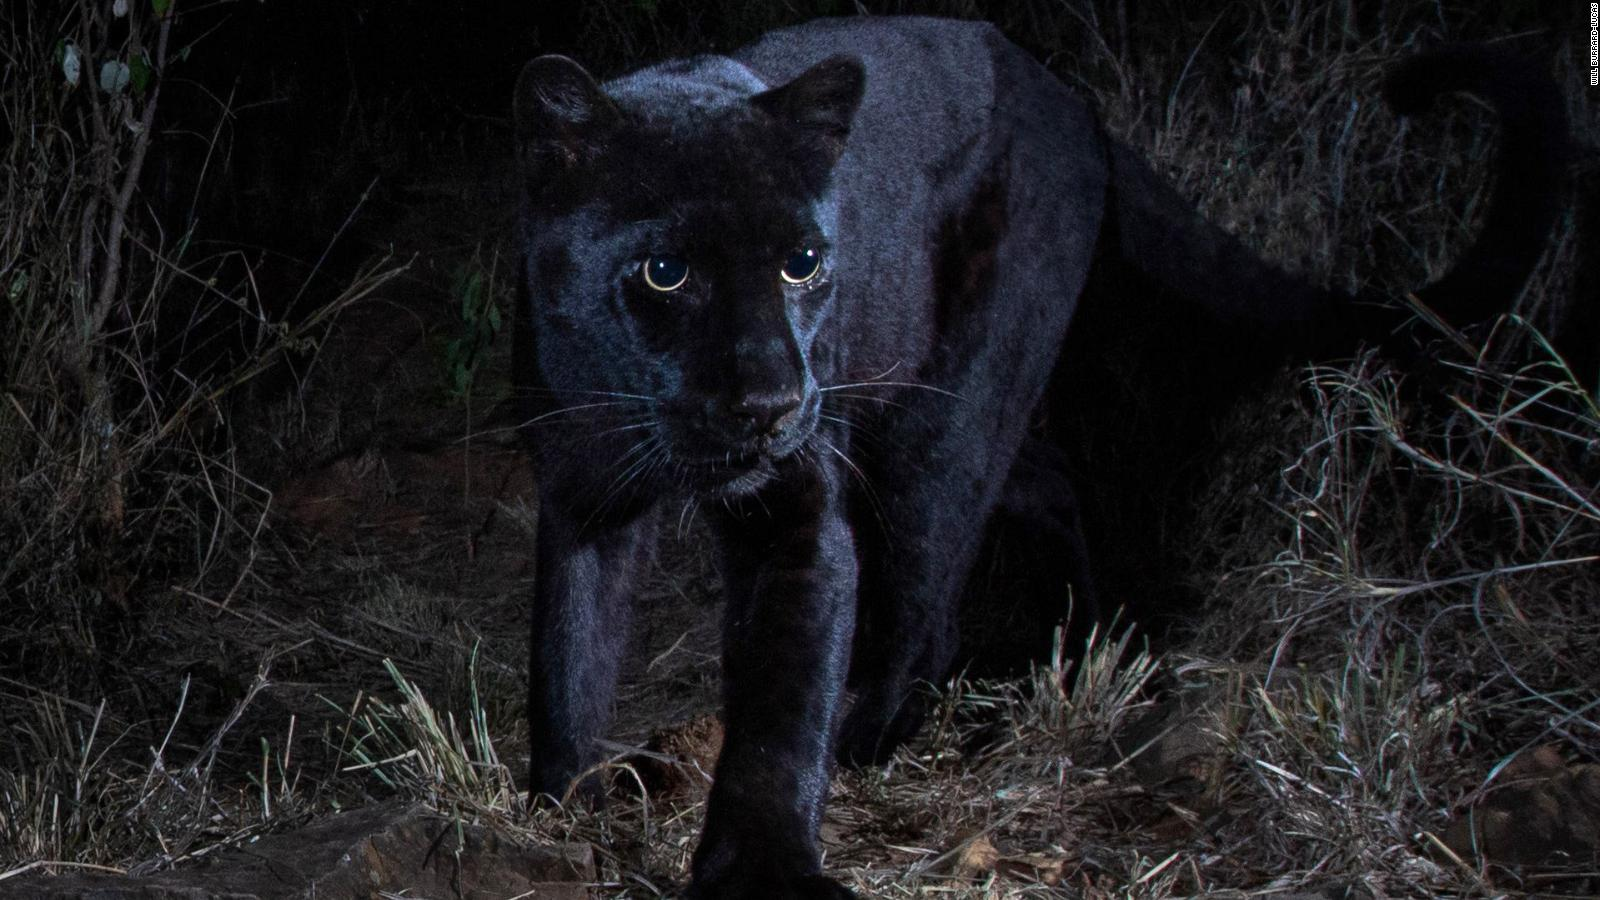 Rare Black Leopard Captured In New Images From Kenya Cnn